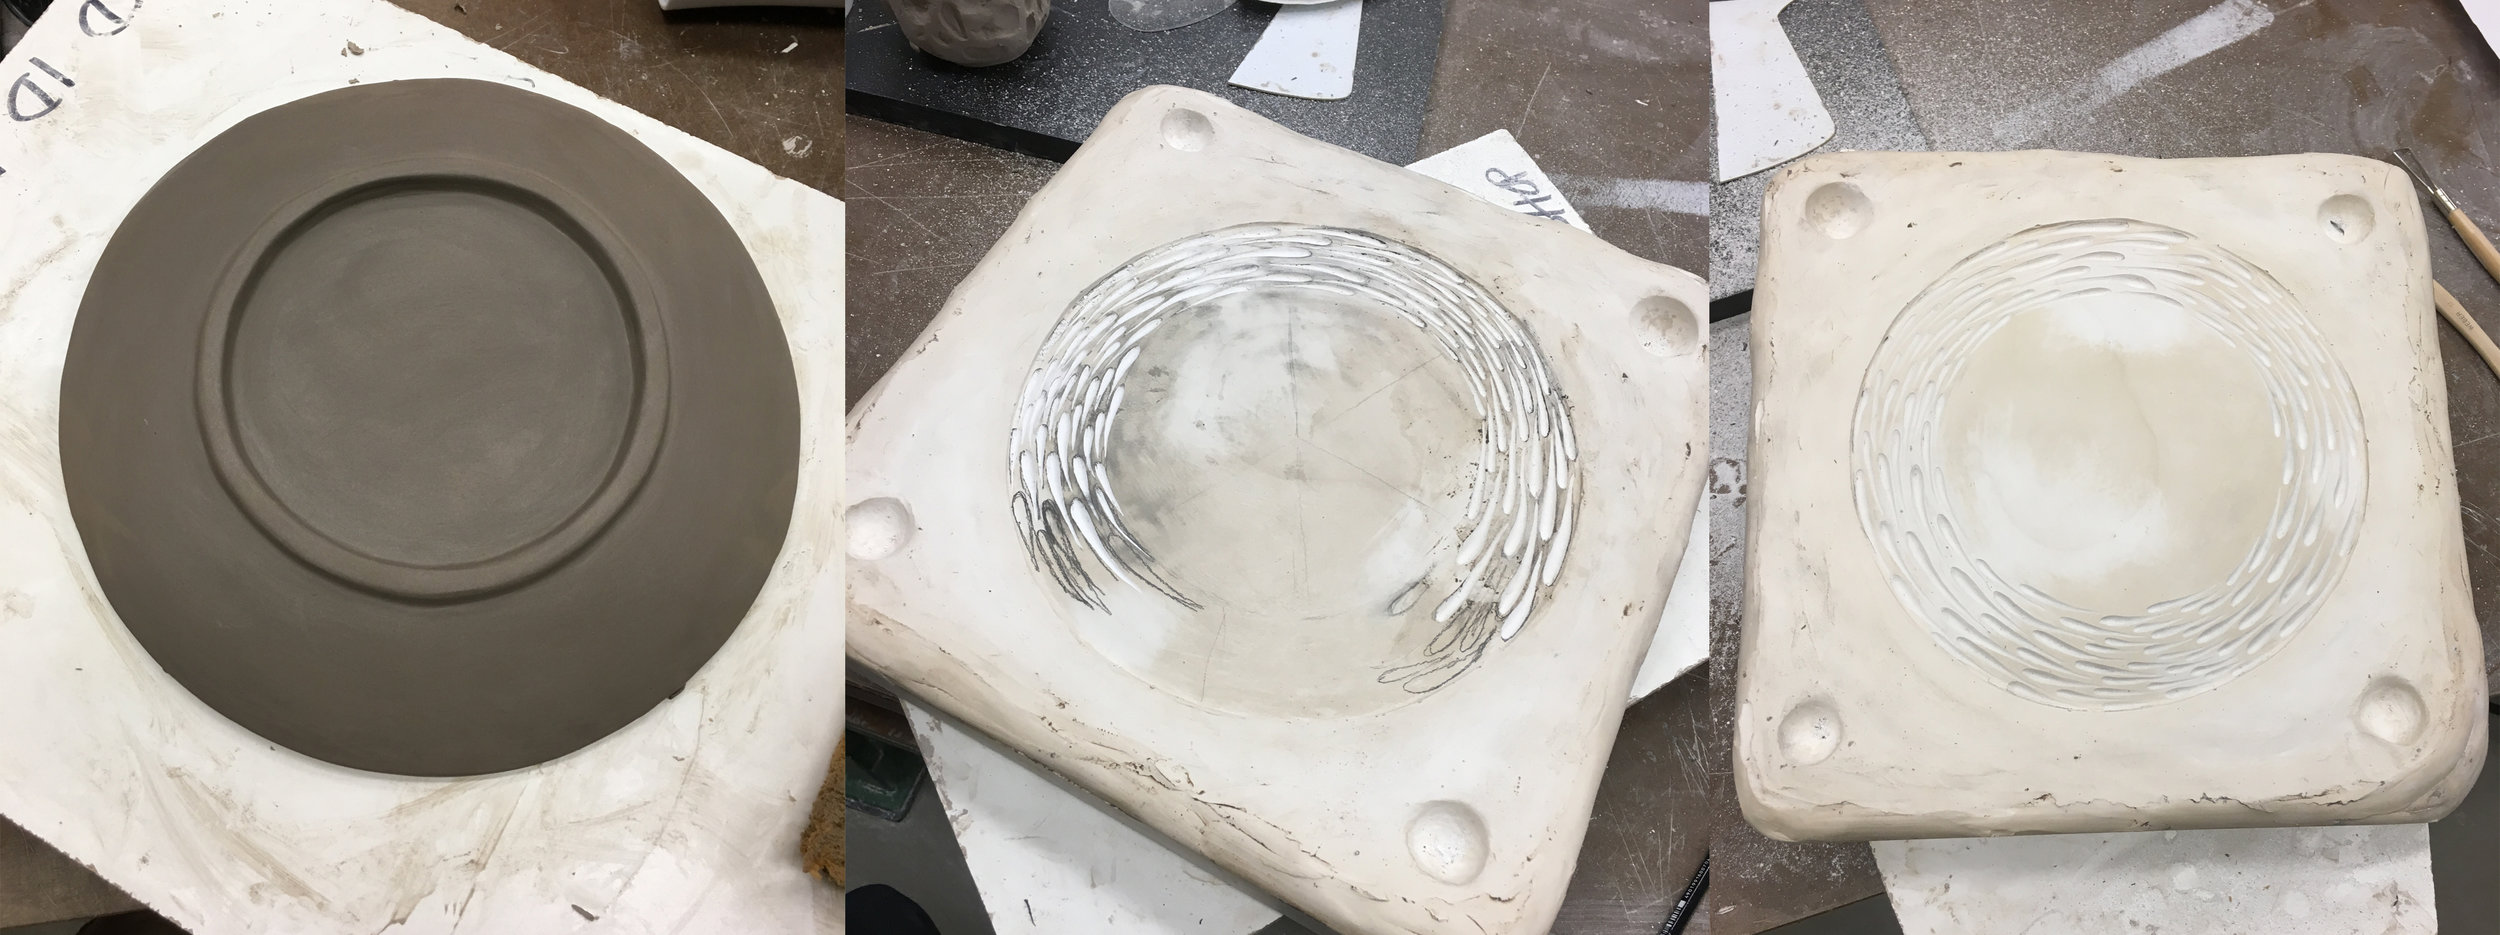 From left to right: Bottom of the plate model showcasing the foot, carving the positive texture into the mold, the finished texture carving.